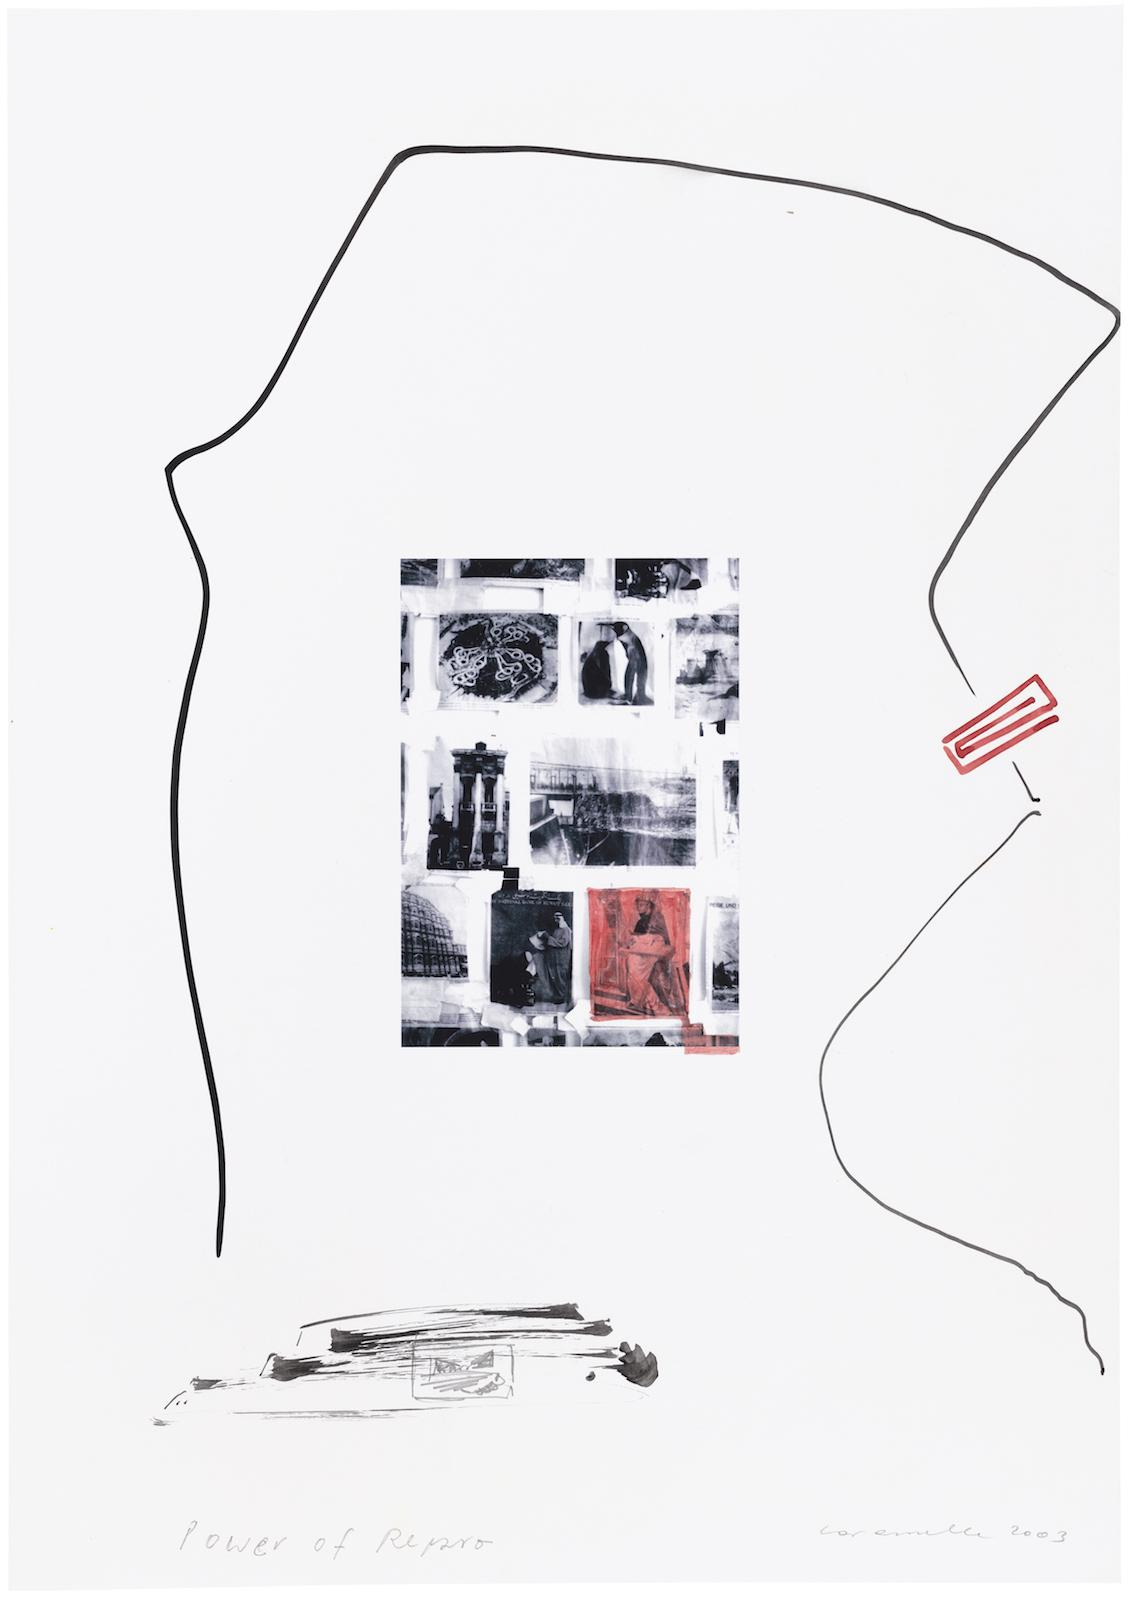 Ernst Caramelle Power of Repro (2003) watercolor on digital print 41,8 x 29,5 cm